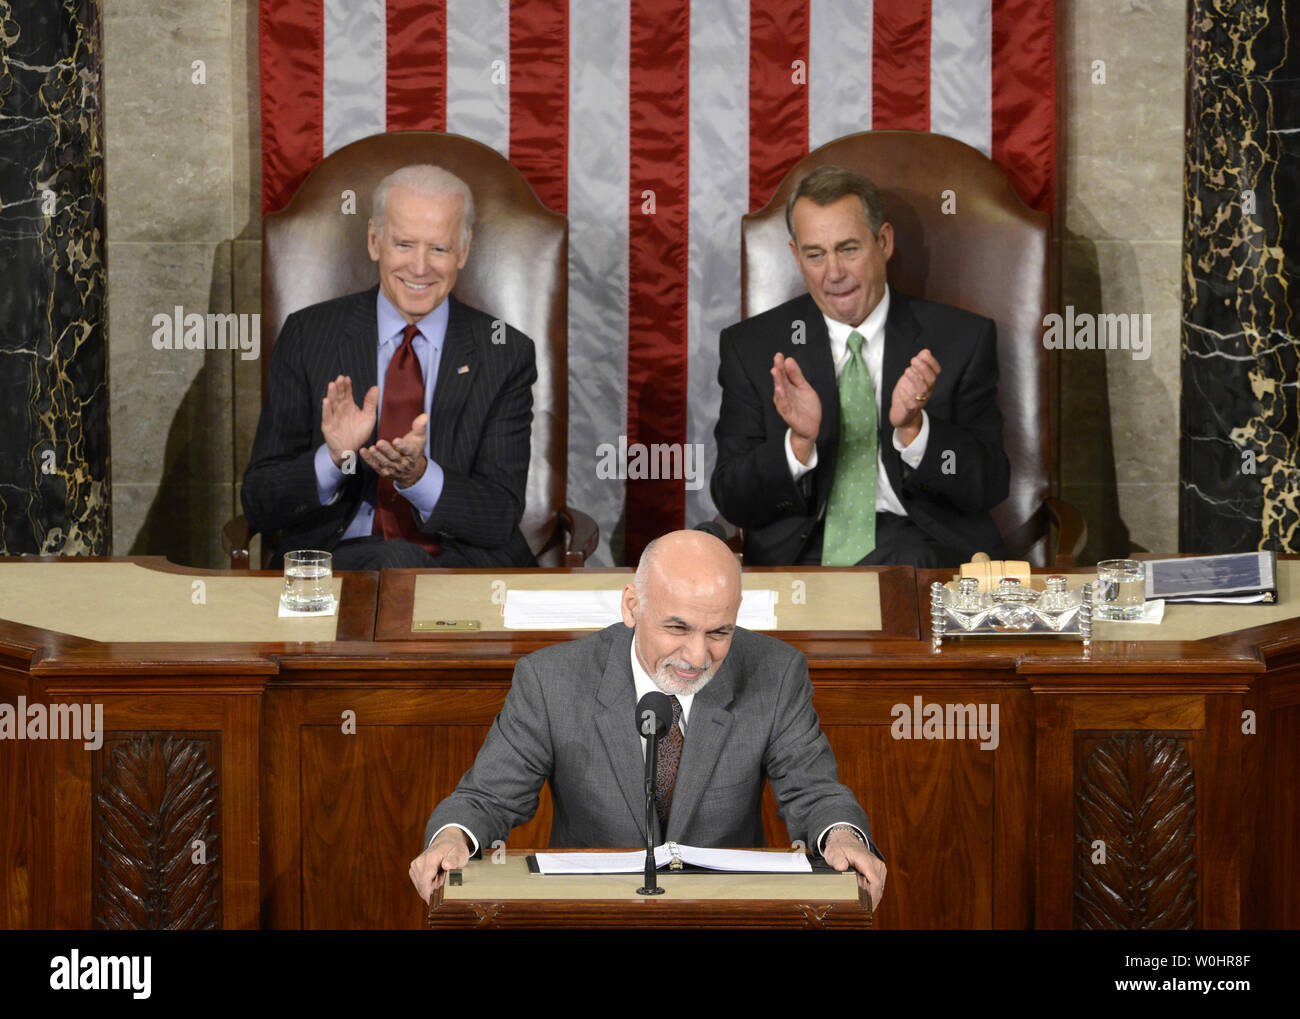 Afghanistan President Ashraf Ghani pauses during applause as he makes remarks to a joint meeting of Congress, as Vice President Joe Biden (L) and House Speaker John Boehner (R-OH) listen, March 25, 2015, in Washington, DC. Ghani is on a multi-day visit to Washington and has received assurances from President Obama to halt the withdrawal of U.S. troops to provide more time for training Afghan forces.             Photo by Mike Theiler/UPI - Stock Image